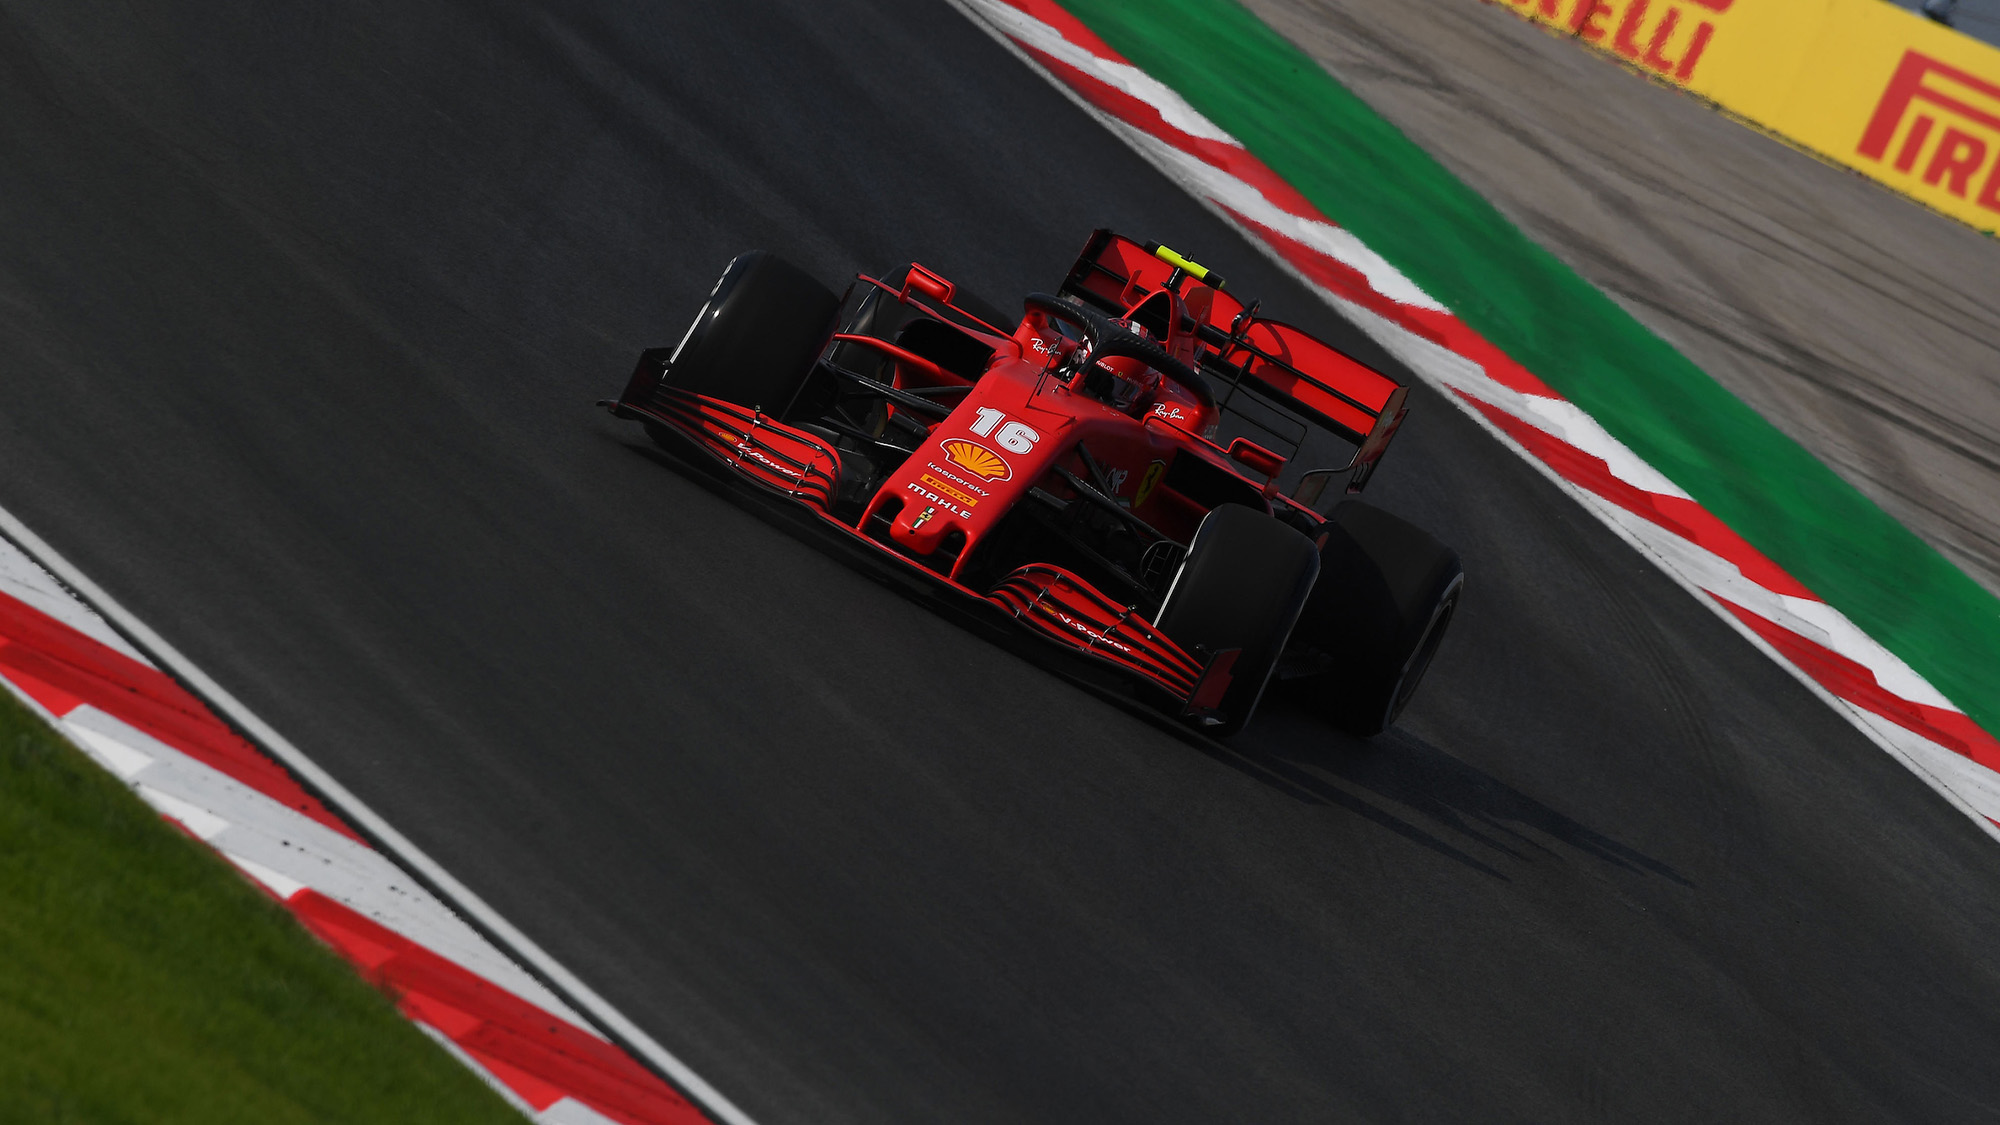 Charles Leclerc slides on the slippery Istanbul PArk circuit ahead of the 2020 F1 Turkish Grand prix